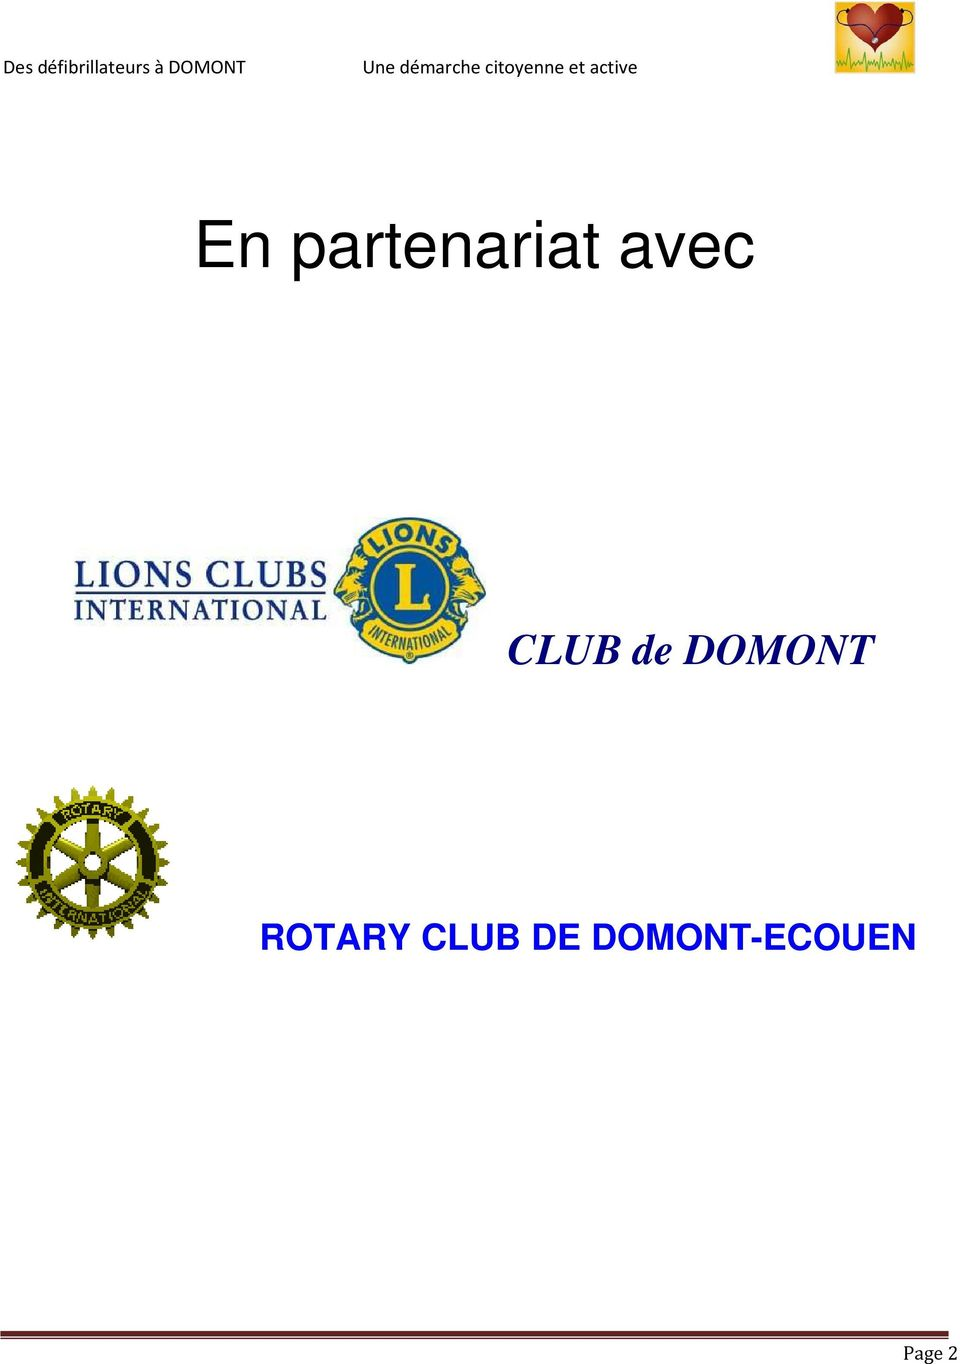 DOMONT ROTARY